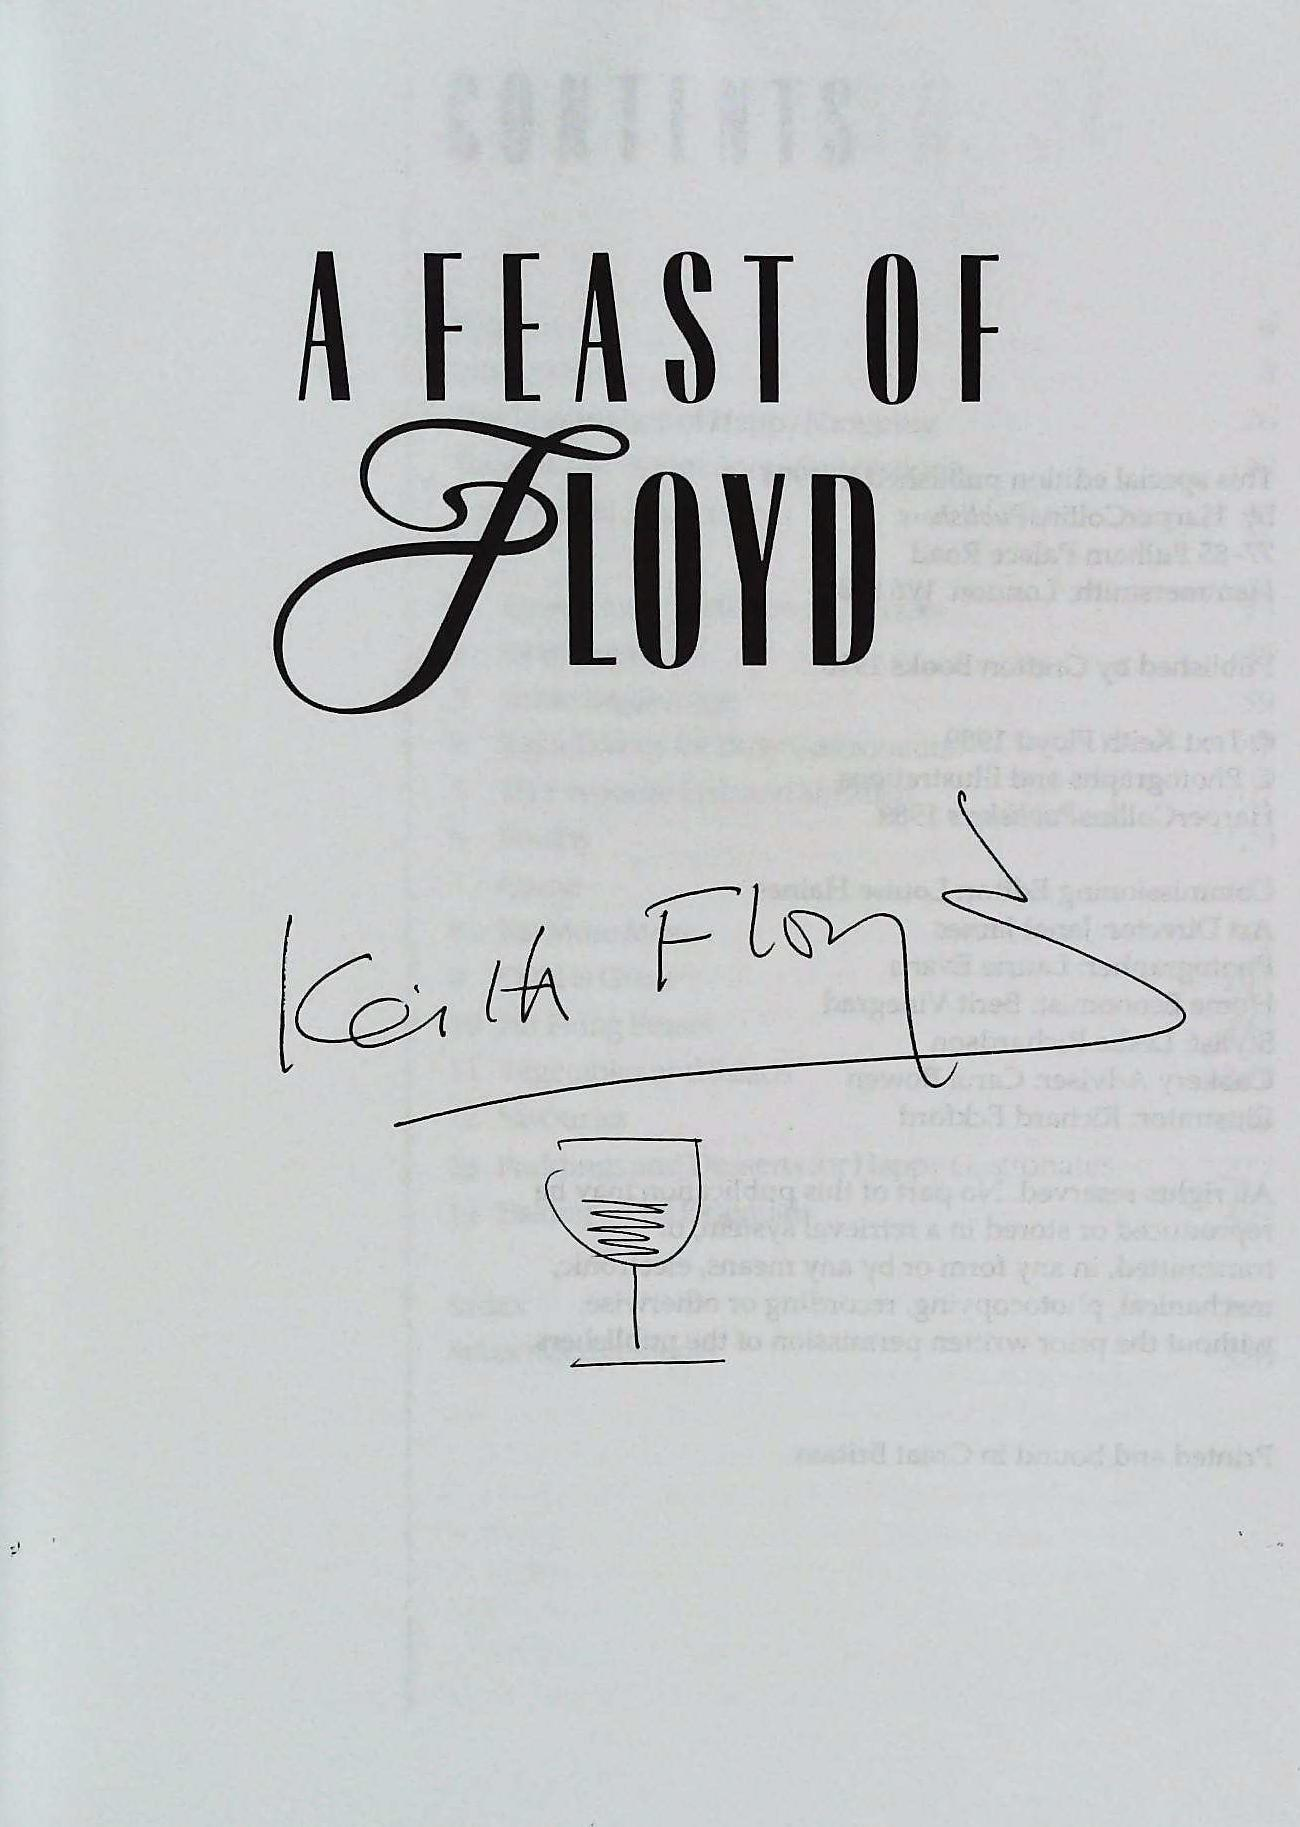 A Feast Of Floyd paperback book by Keith Floyd. Published 1994 HarperCollins. 320 pages. Cover - Image 3 of 4